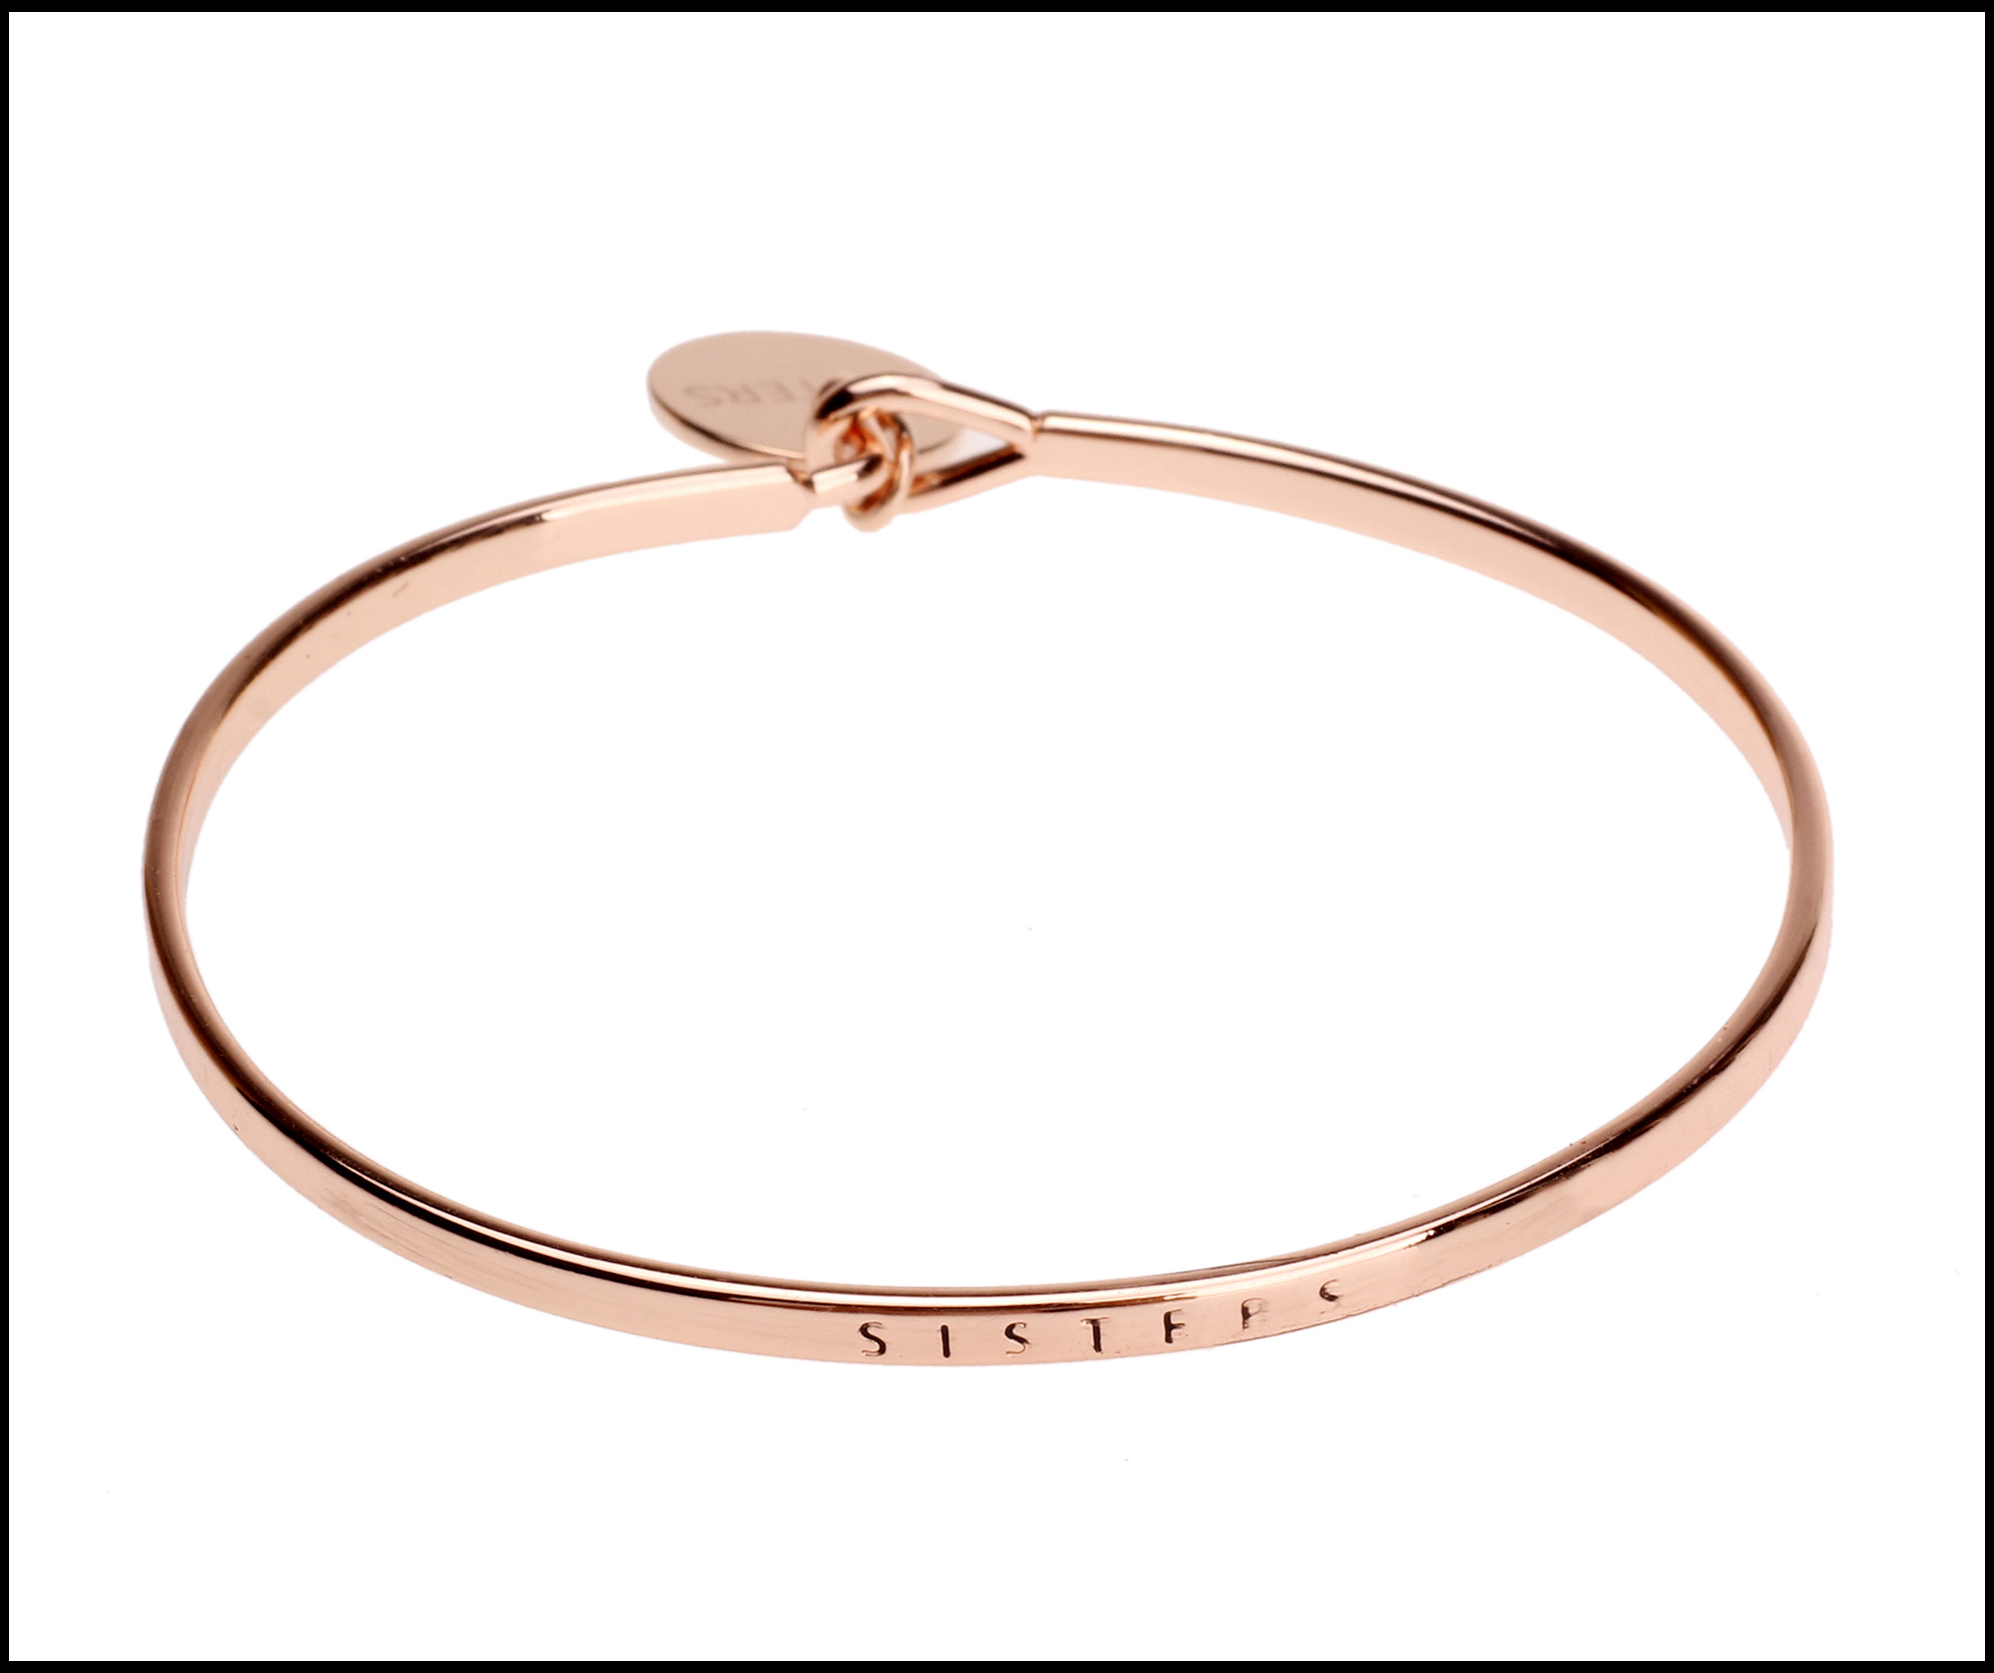 sister rose gold bangle